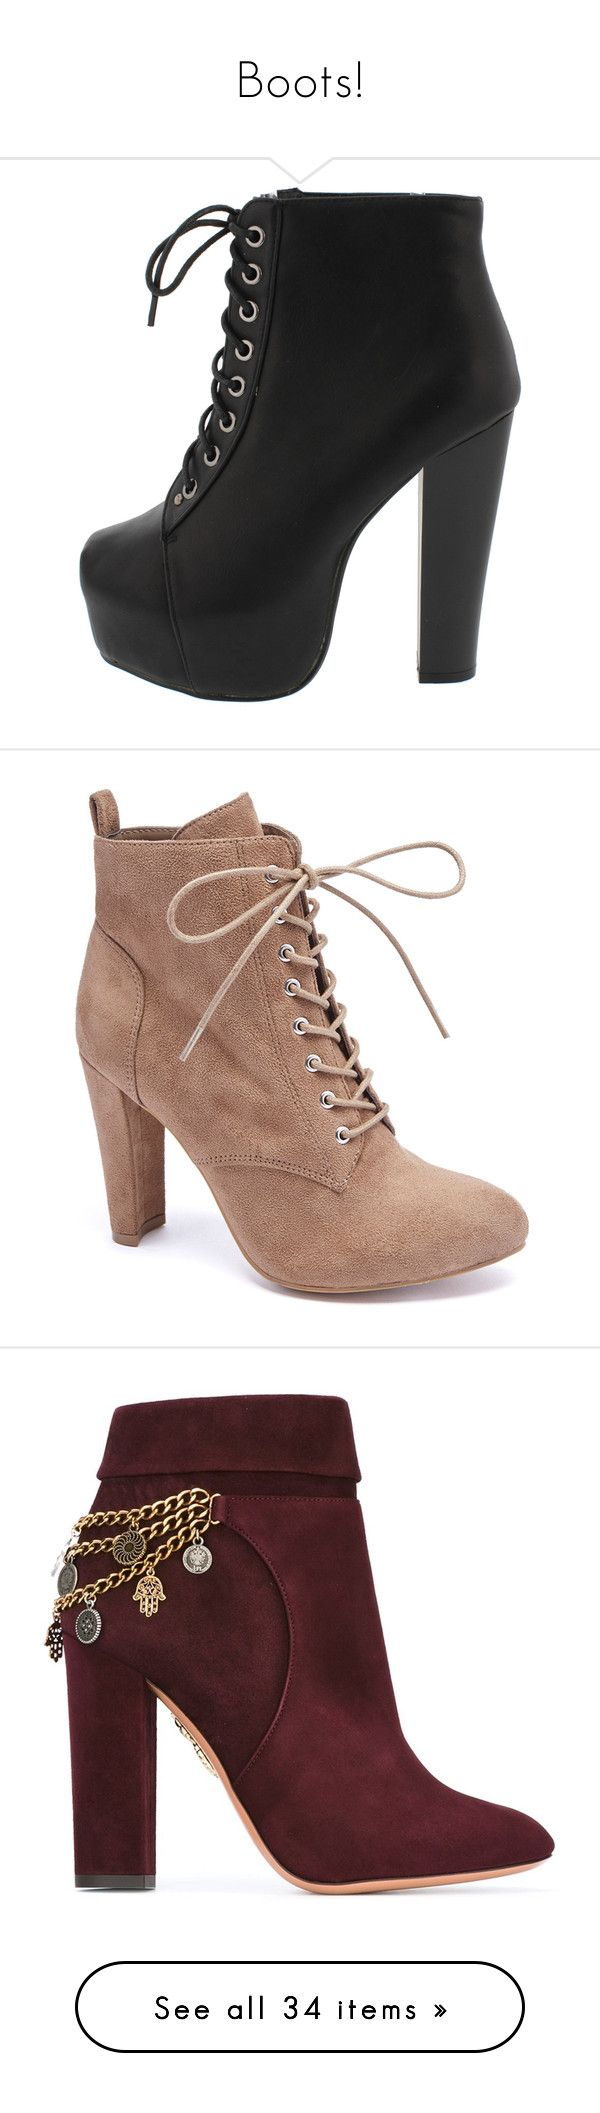 """""""Boots!"""" by purpelleunicorn ❤ liked on Polyvore featuring shoes, boots, ankle booties, heels, black wedge booties, black ankle boots, black wedge ankle booties, black booties, wedge ankle boots and ankle boots"""